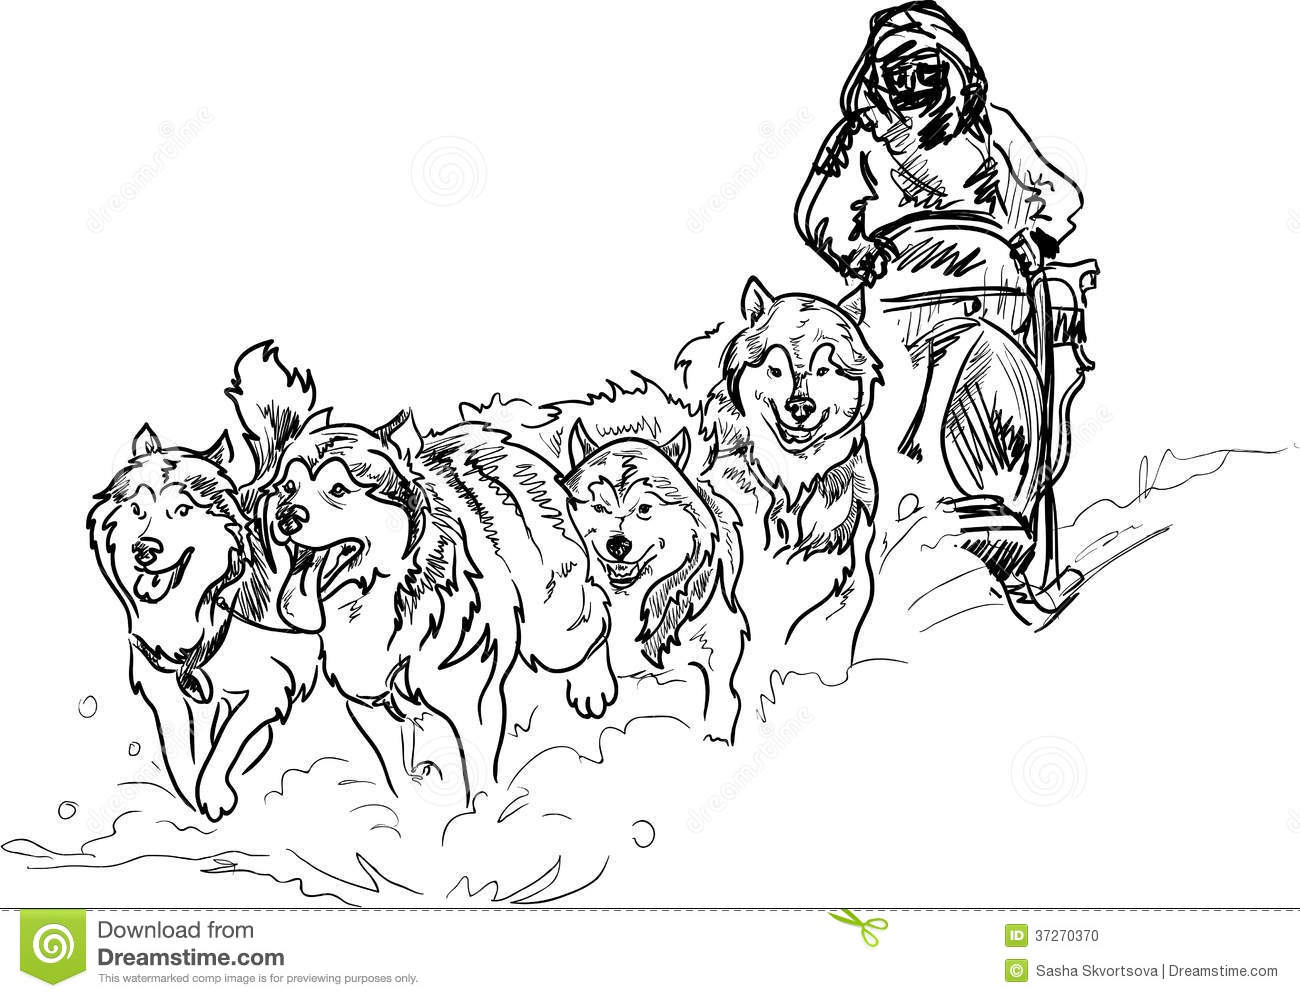 Alaskan sled dogs stock illustration. Image of